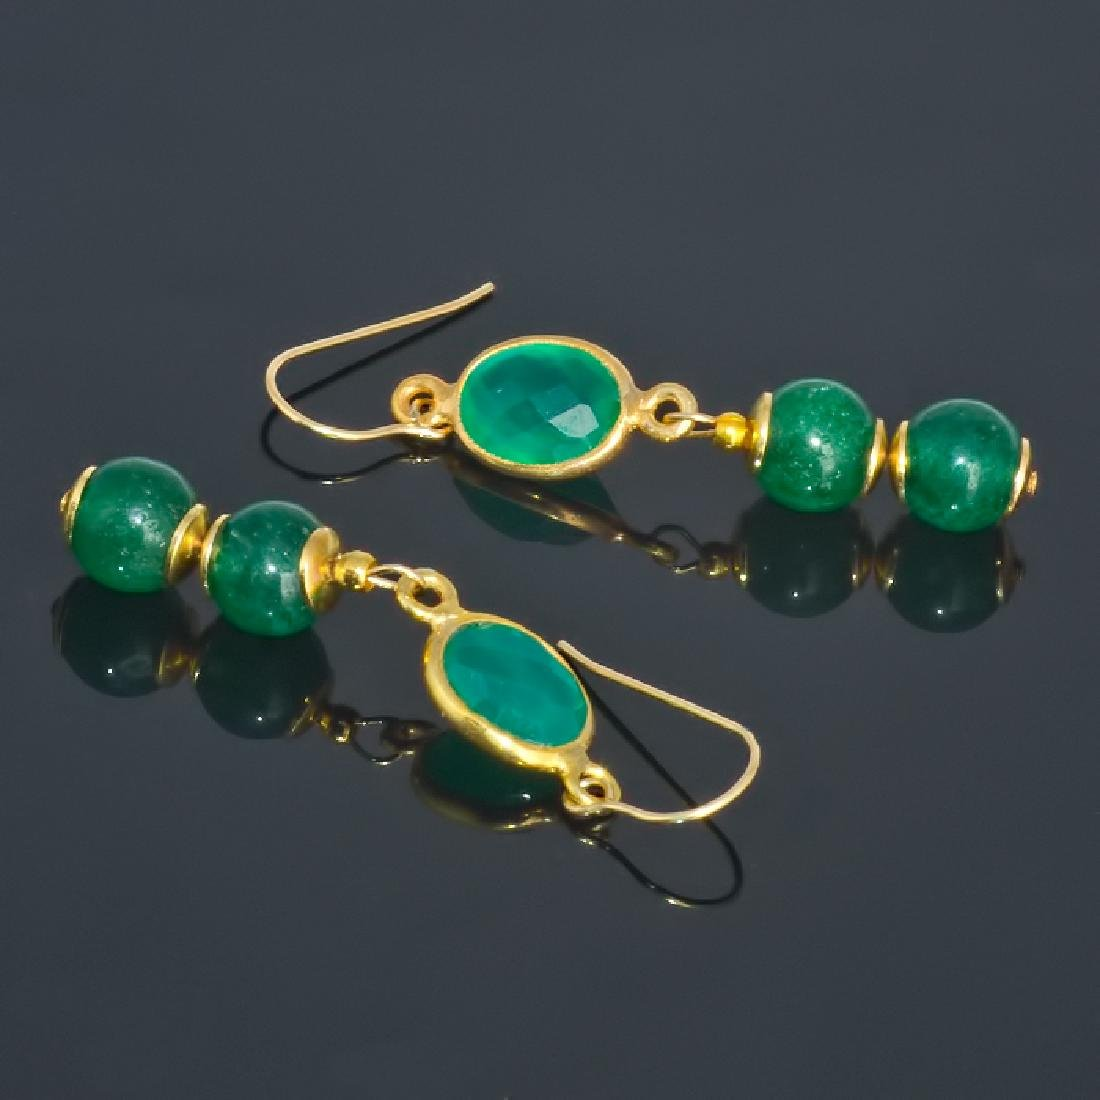 14K Art Deco Style Earrings with Jadeite Jade and